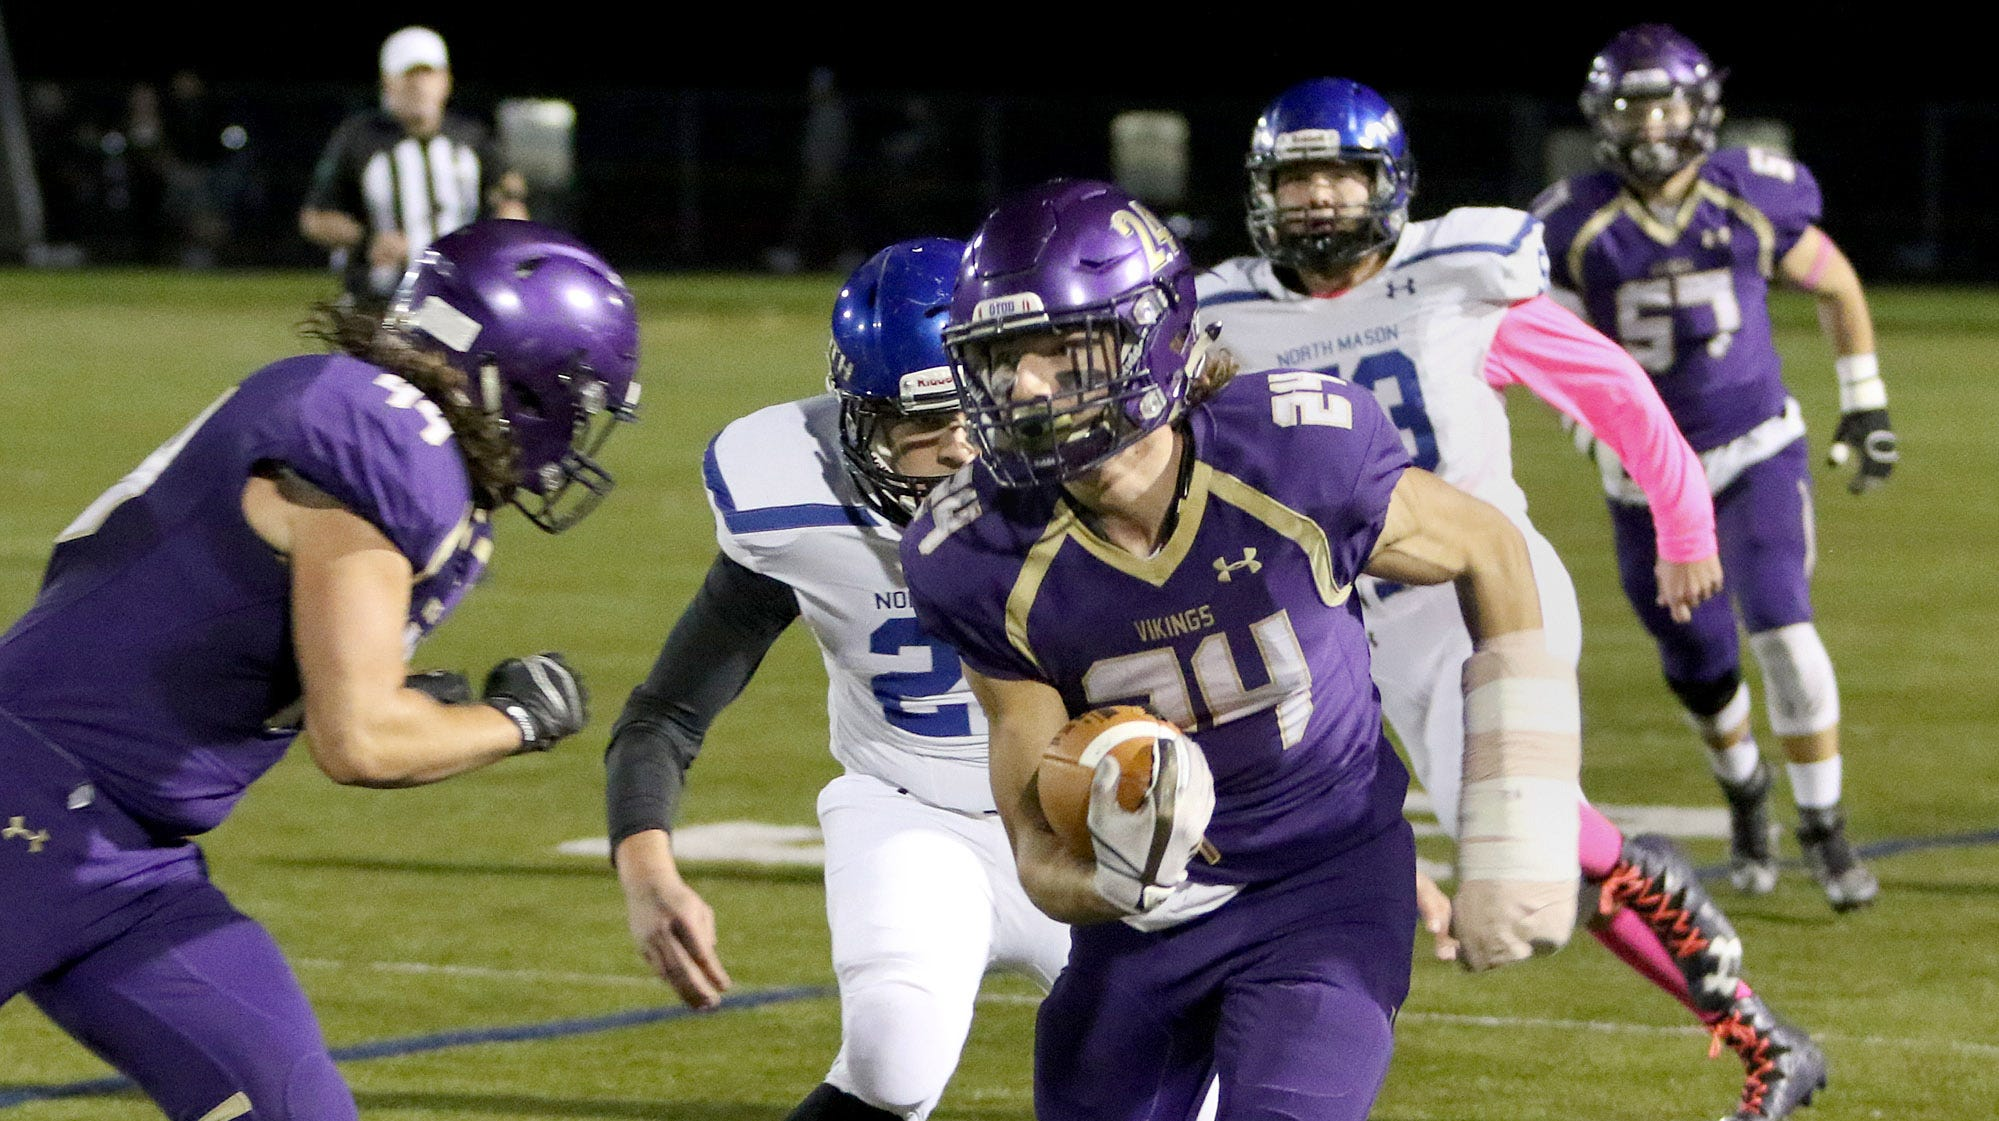 North Kitsap's Riley Solis scored one of his two touchdowns on Friday against North Mason. Solis' Vikings defeated the Bulldogs, 53-6.